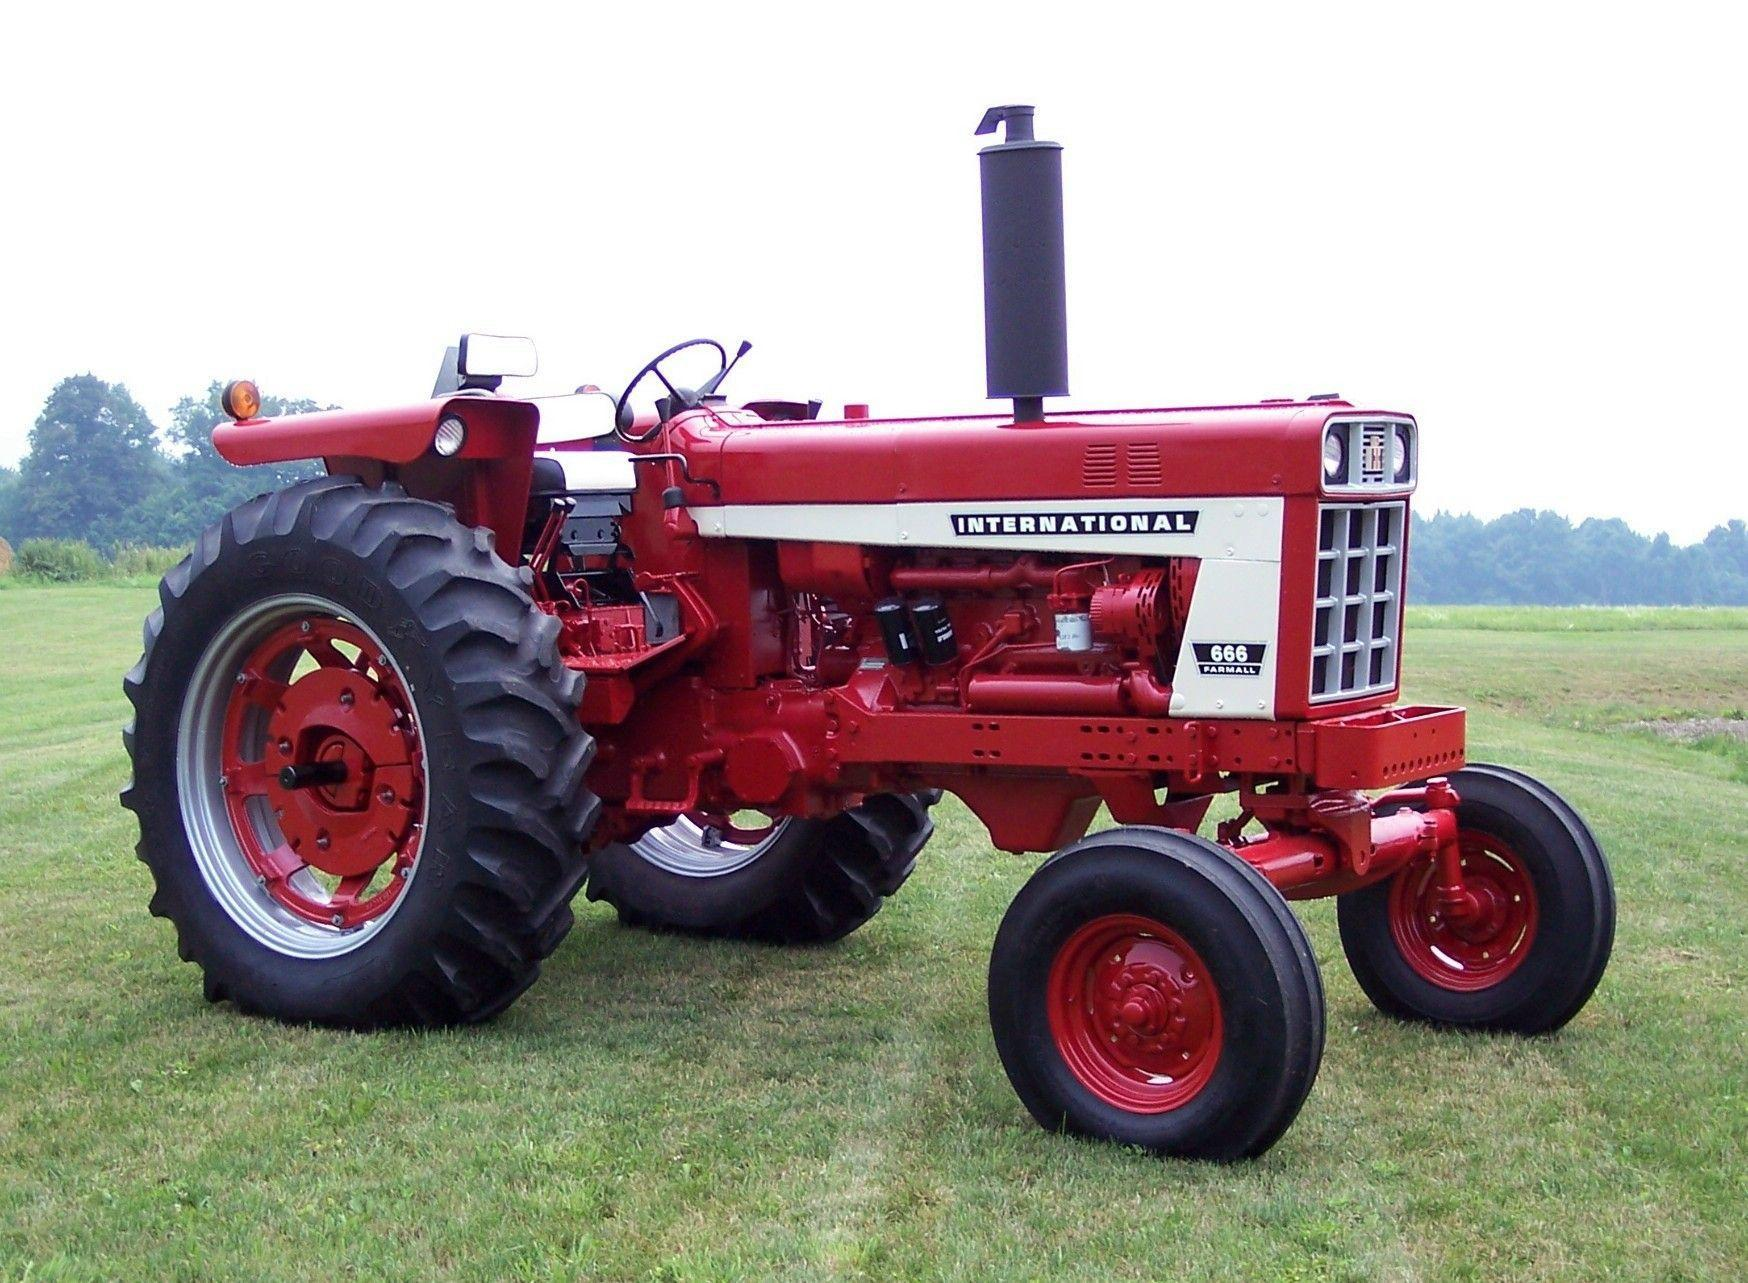 289 best images about tractors on Pinterest | John deere, Signs ...